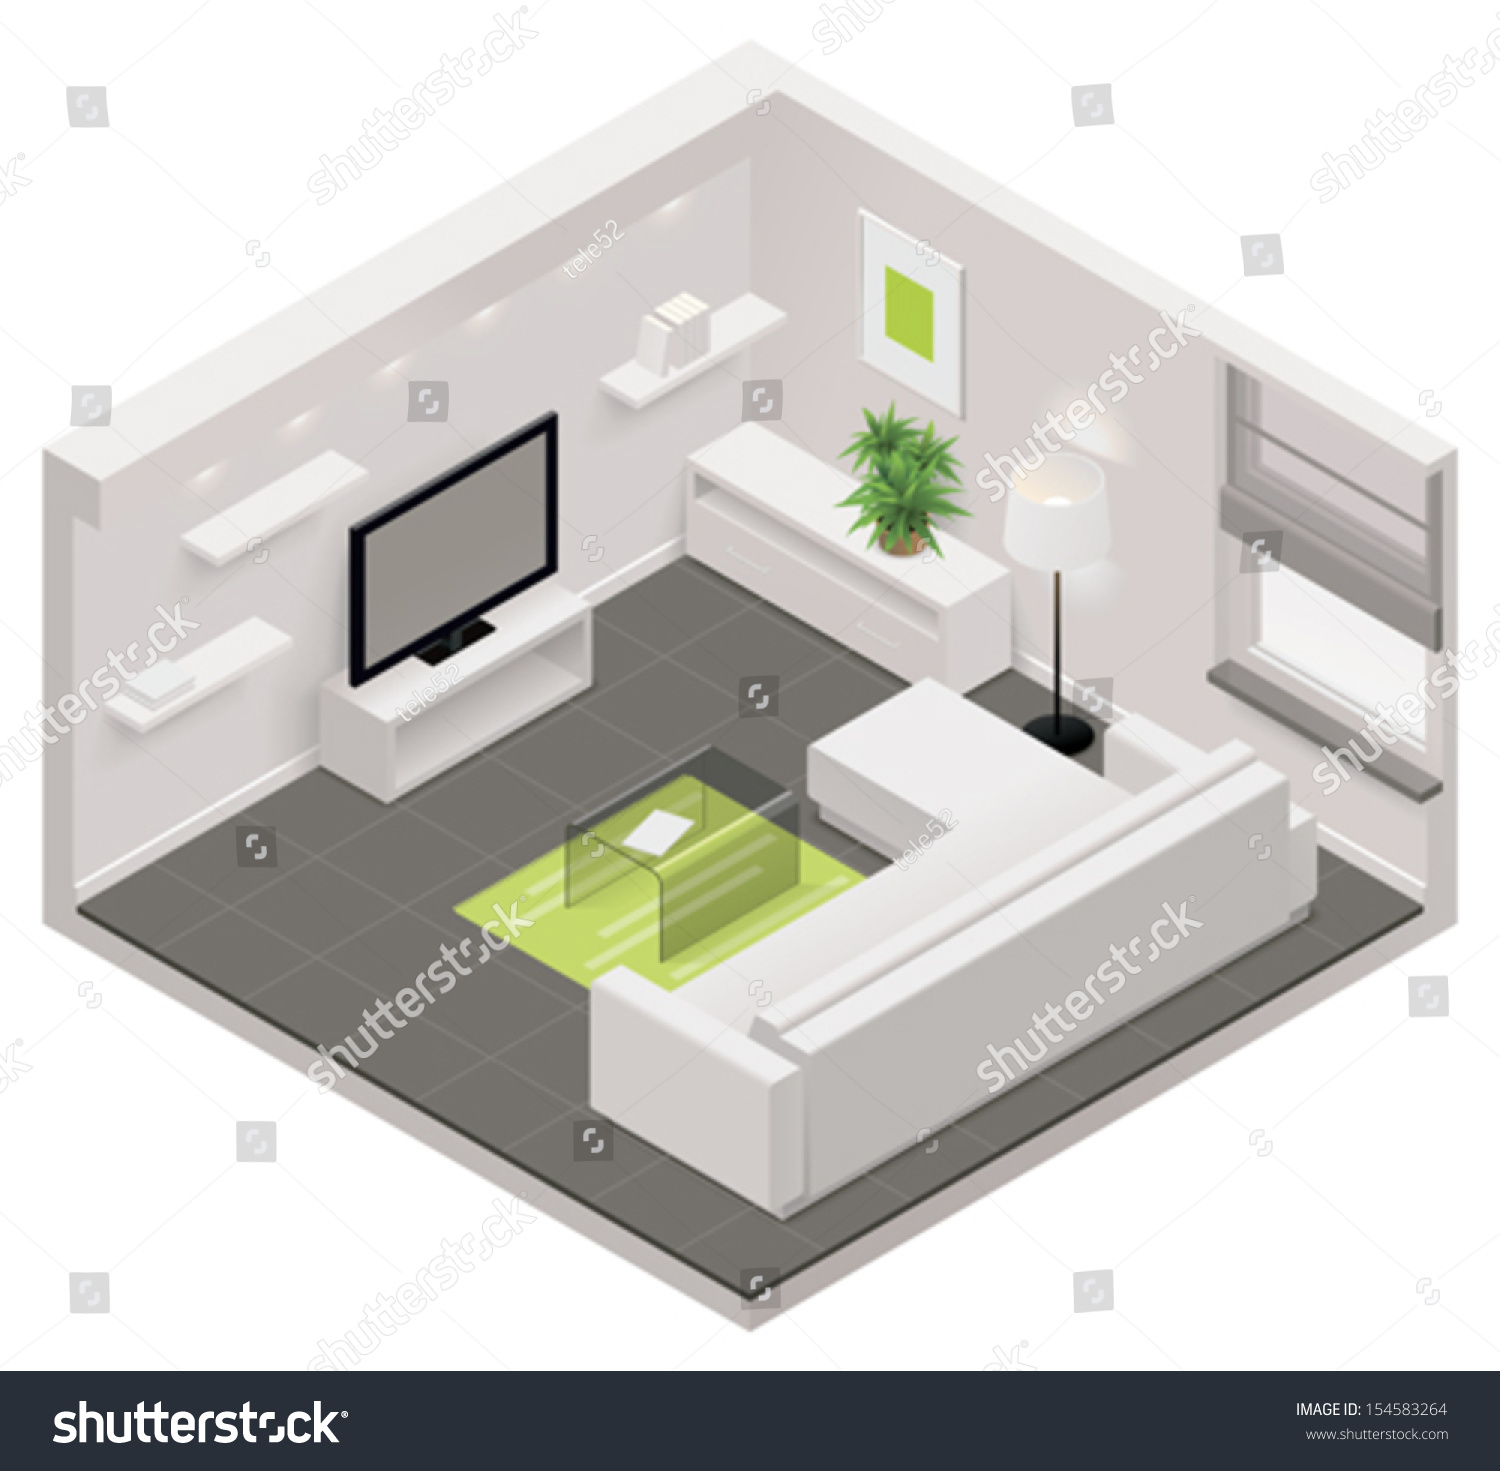 Vector Isometric Living Room Icon Stock Vector 154583264  : stock vector vector isometric living room icon 154583264 from www.shutterstock.com size 1500 x 1471 jpeg 292kB